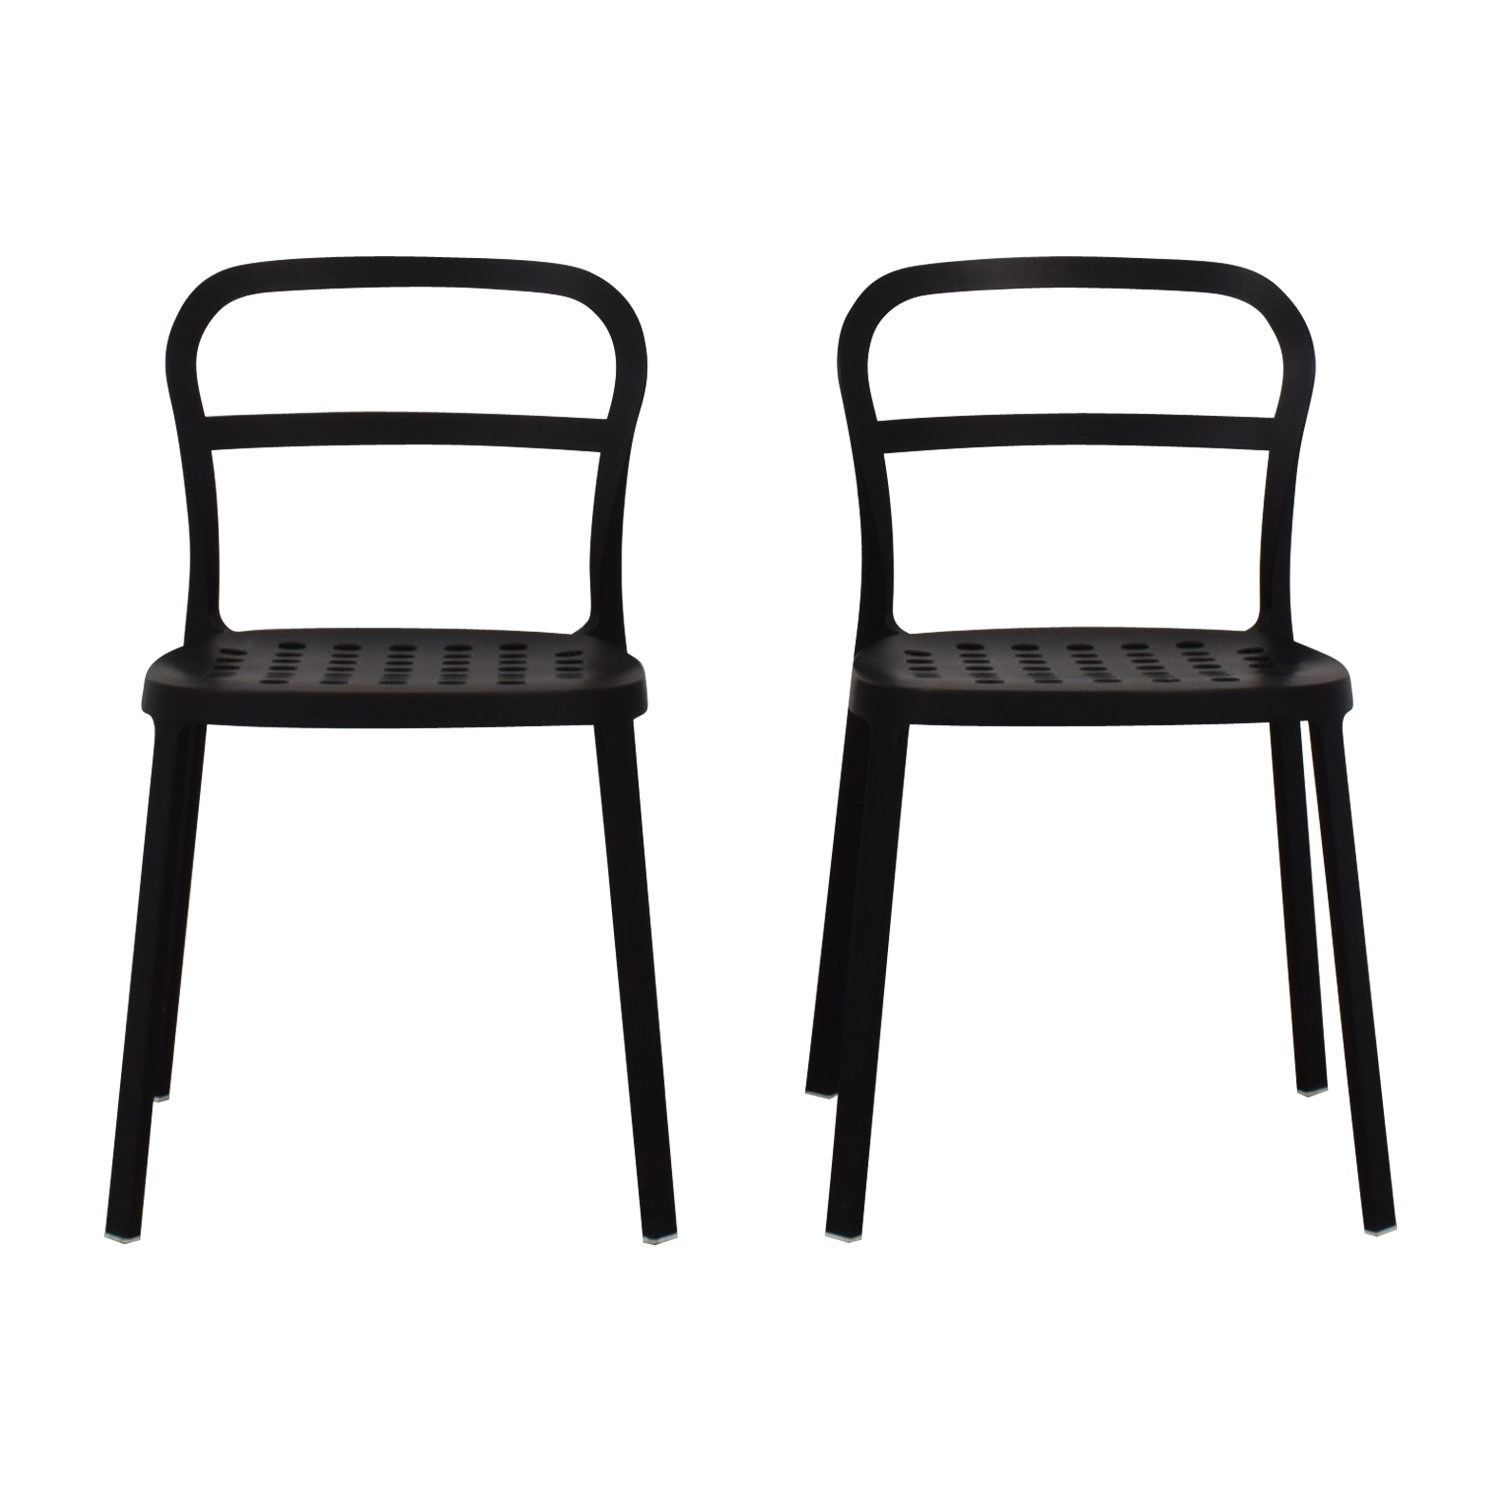 Astonishing 90 Off Ikea Ikea Black Metal Chairs Chairs Lamtechconsult Wood Chair Design Ideas Lamtechconsultcom